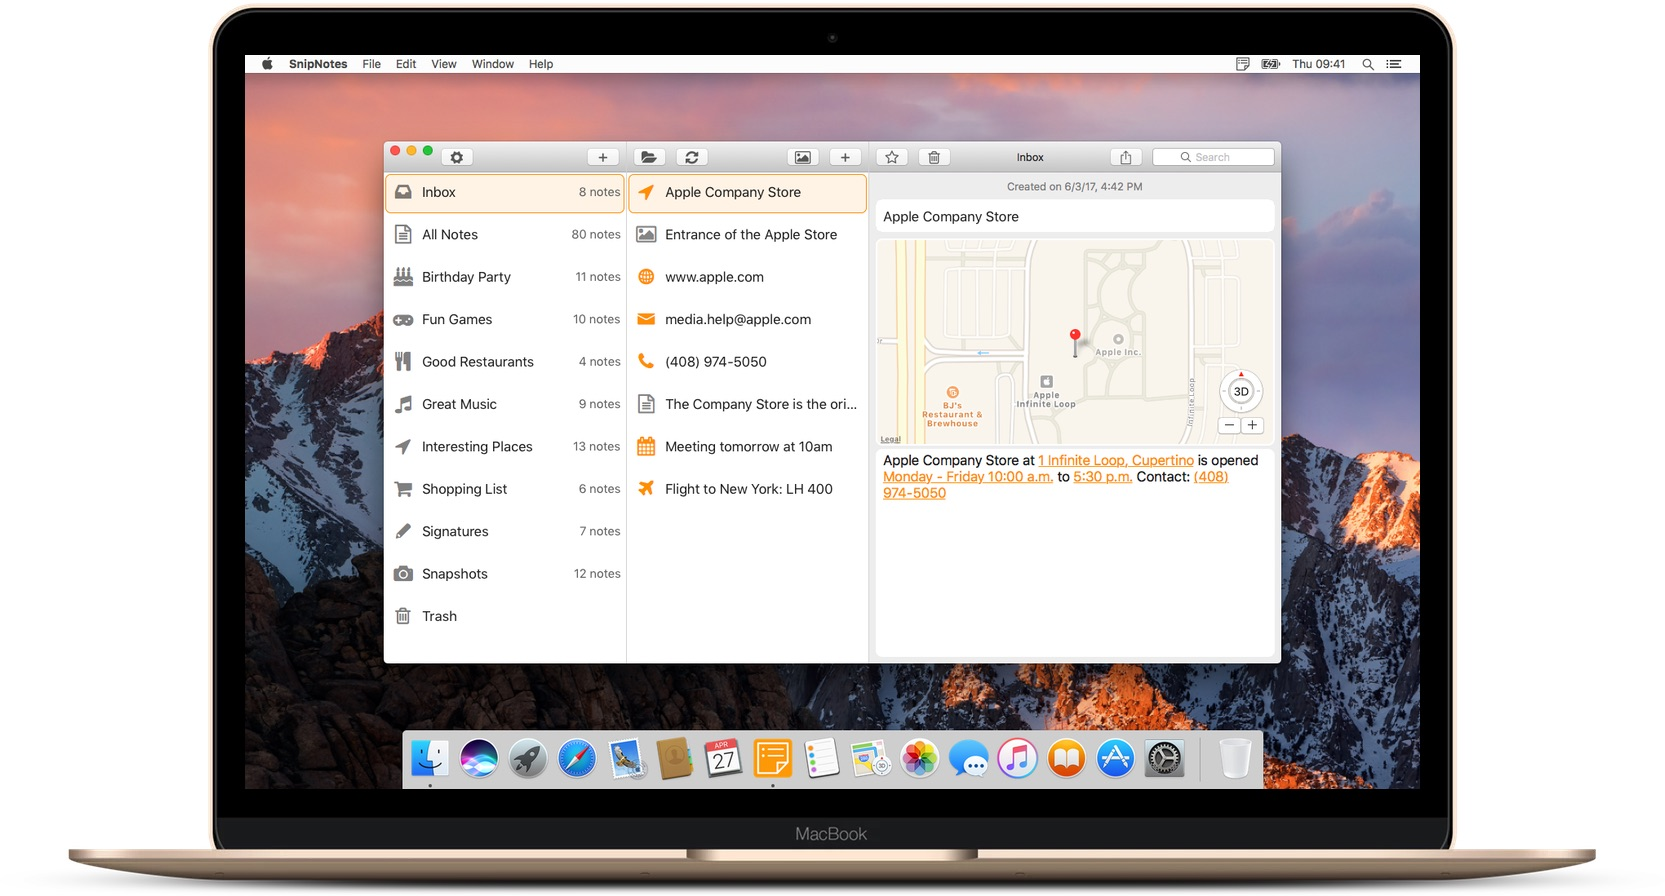 Note-taking app SnipNotes arrives on the Mac Image